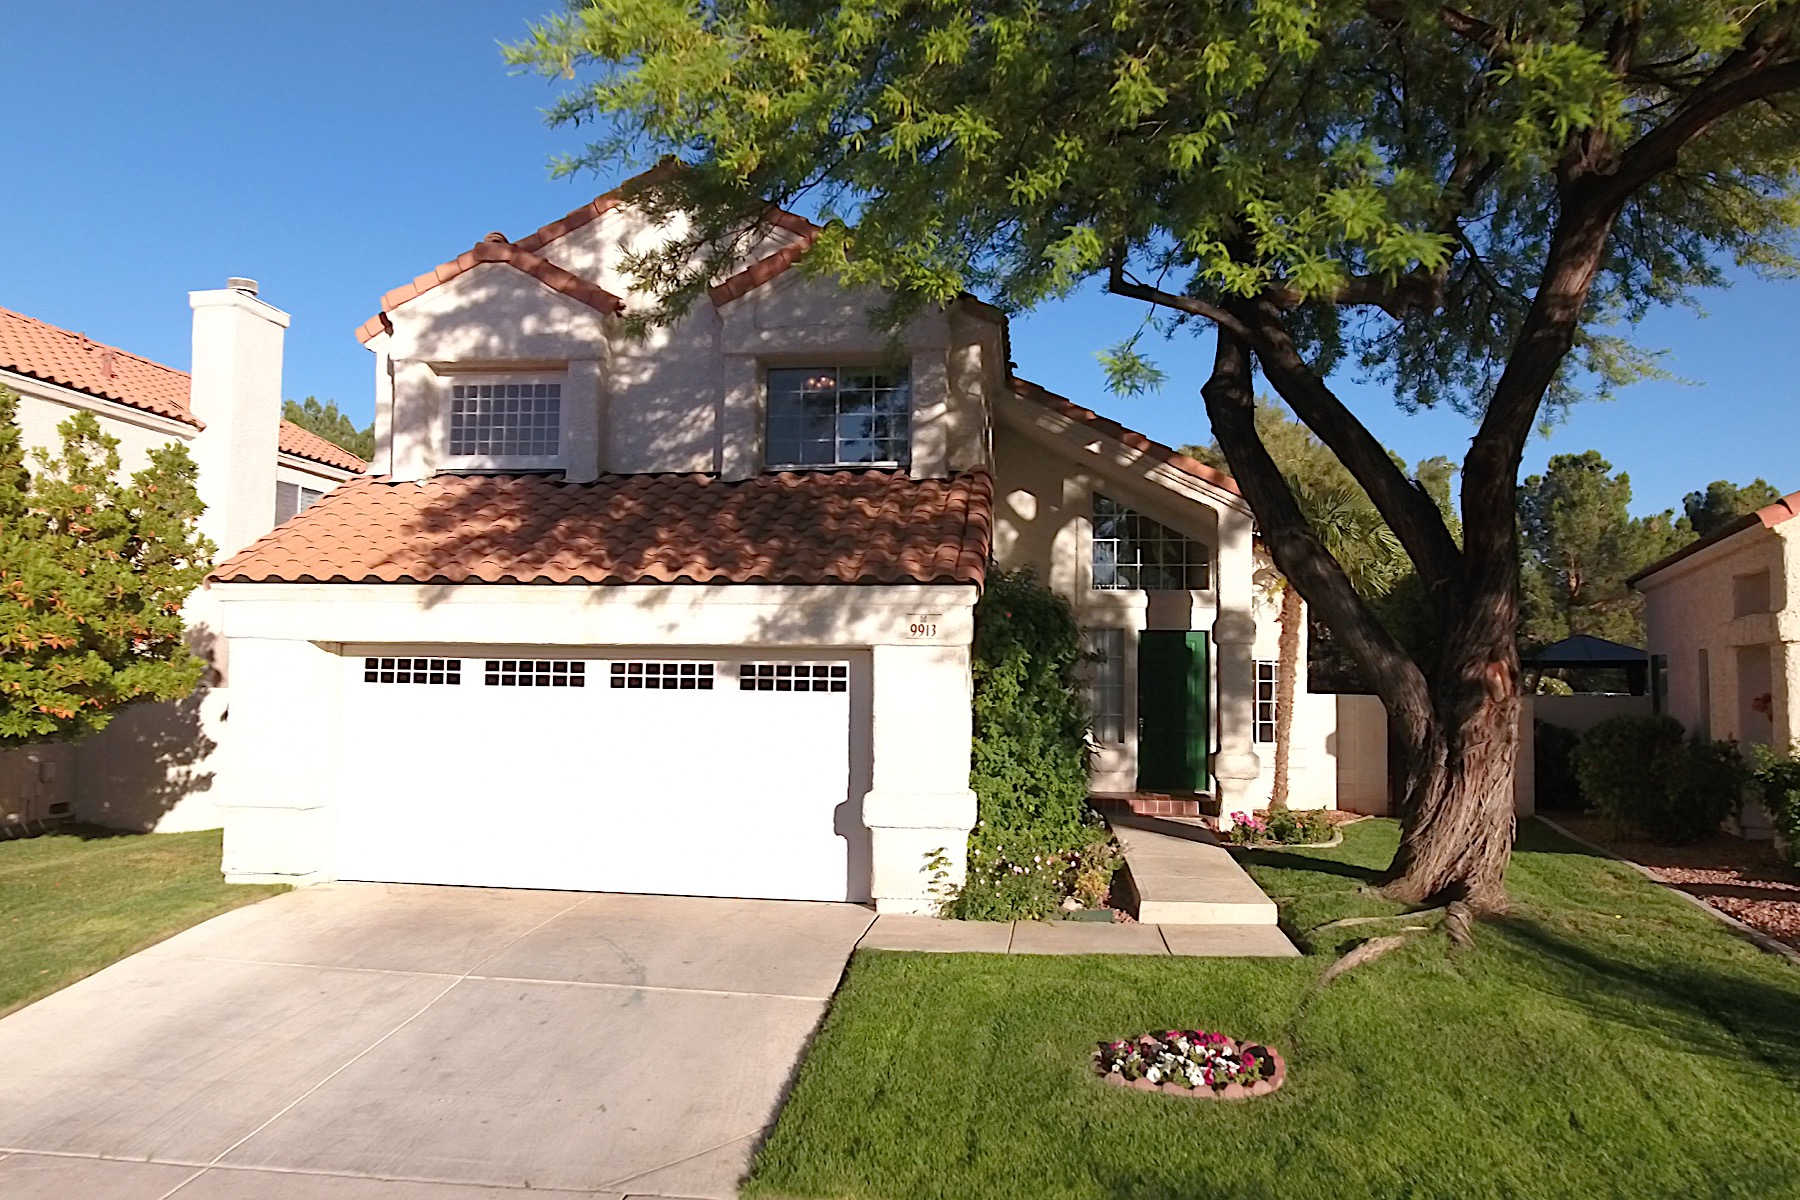 Single Family Home for Sale at Beautiful Model Home with Duck Pond Views in The Lakes 9913 Biscayne Lane Las Vegas, Nevada, 89117 United States